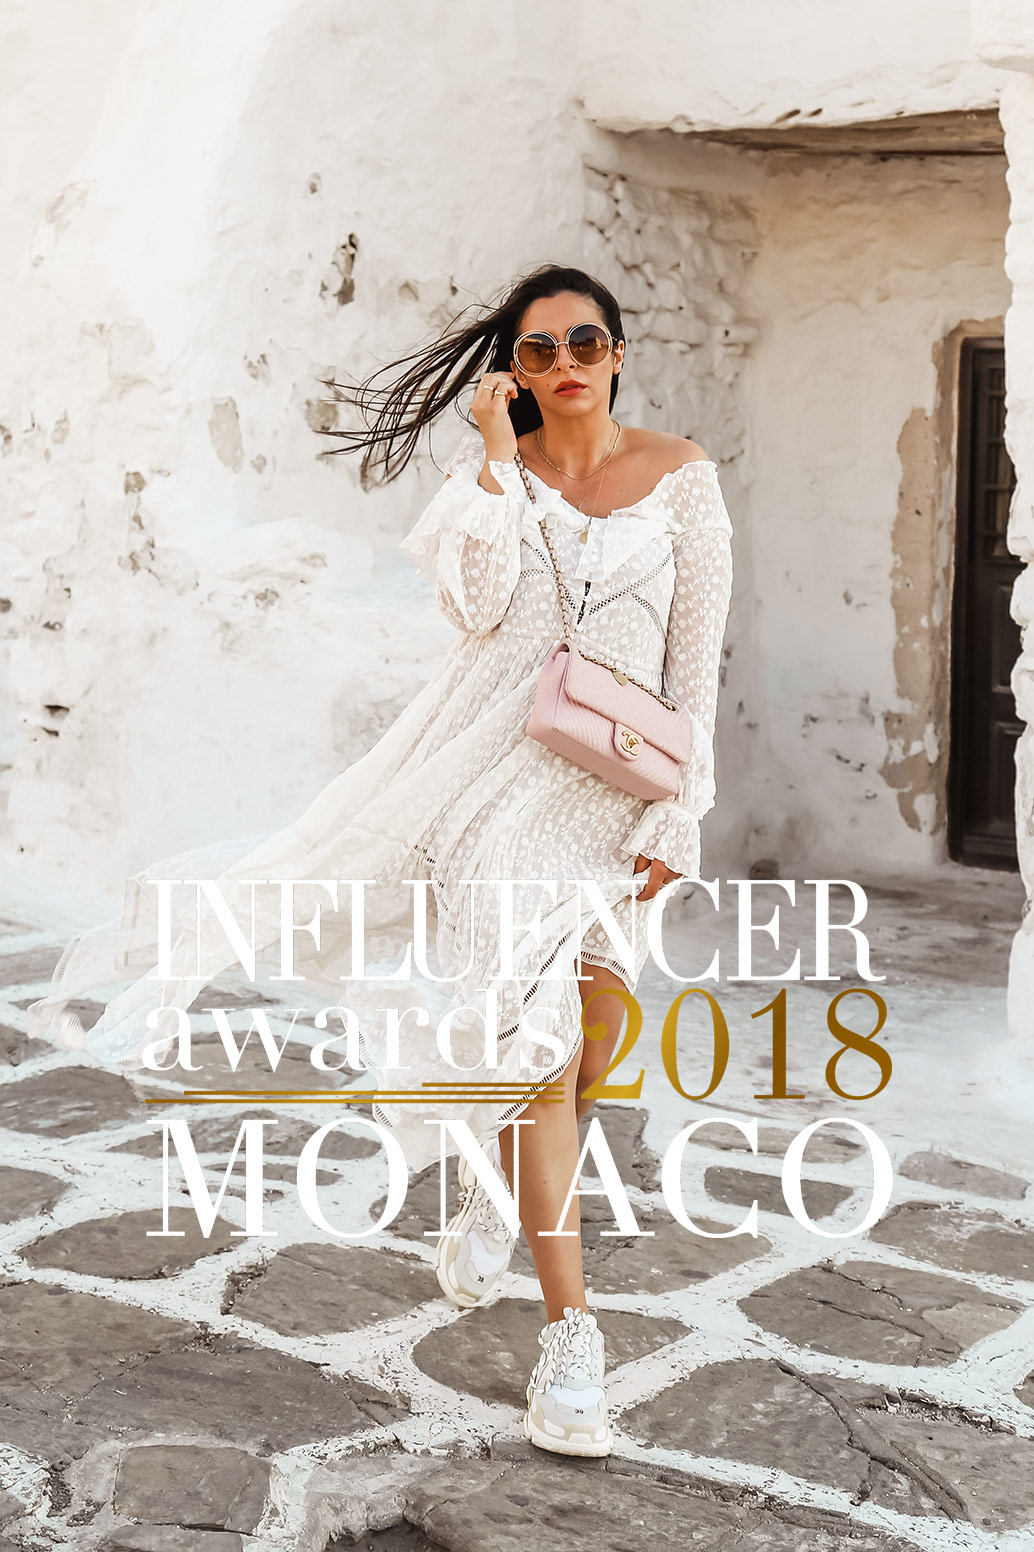 INFLUENCER AWARDS MONACO 2018: Vote For Me!